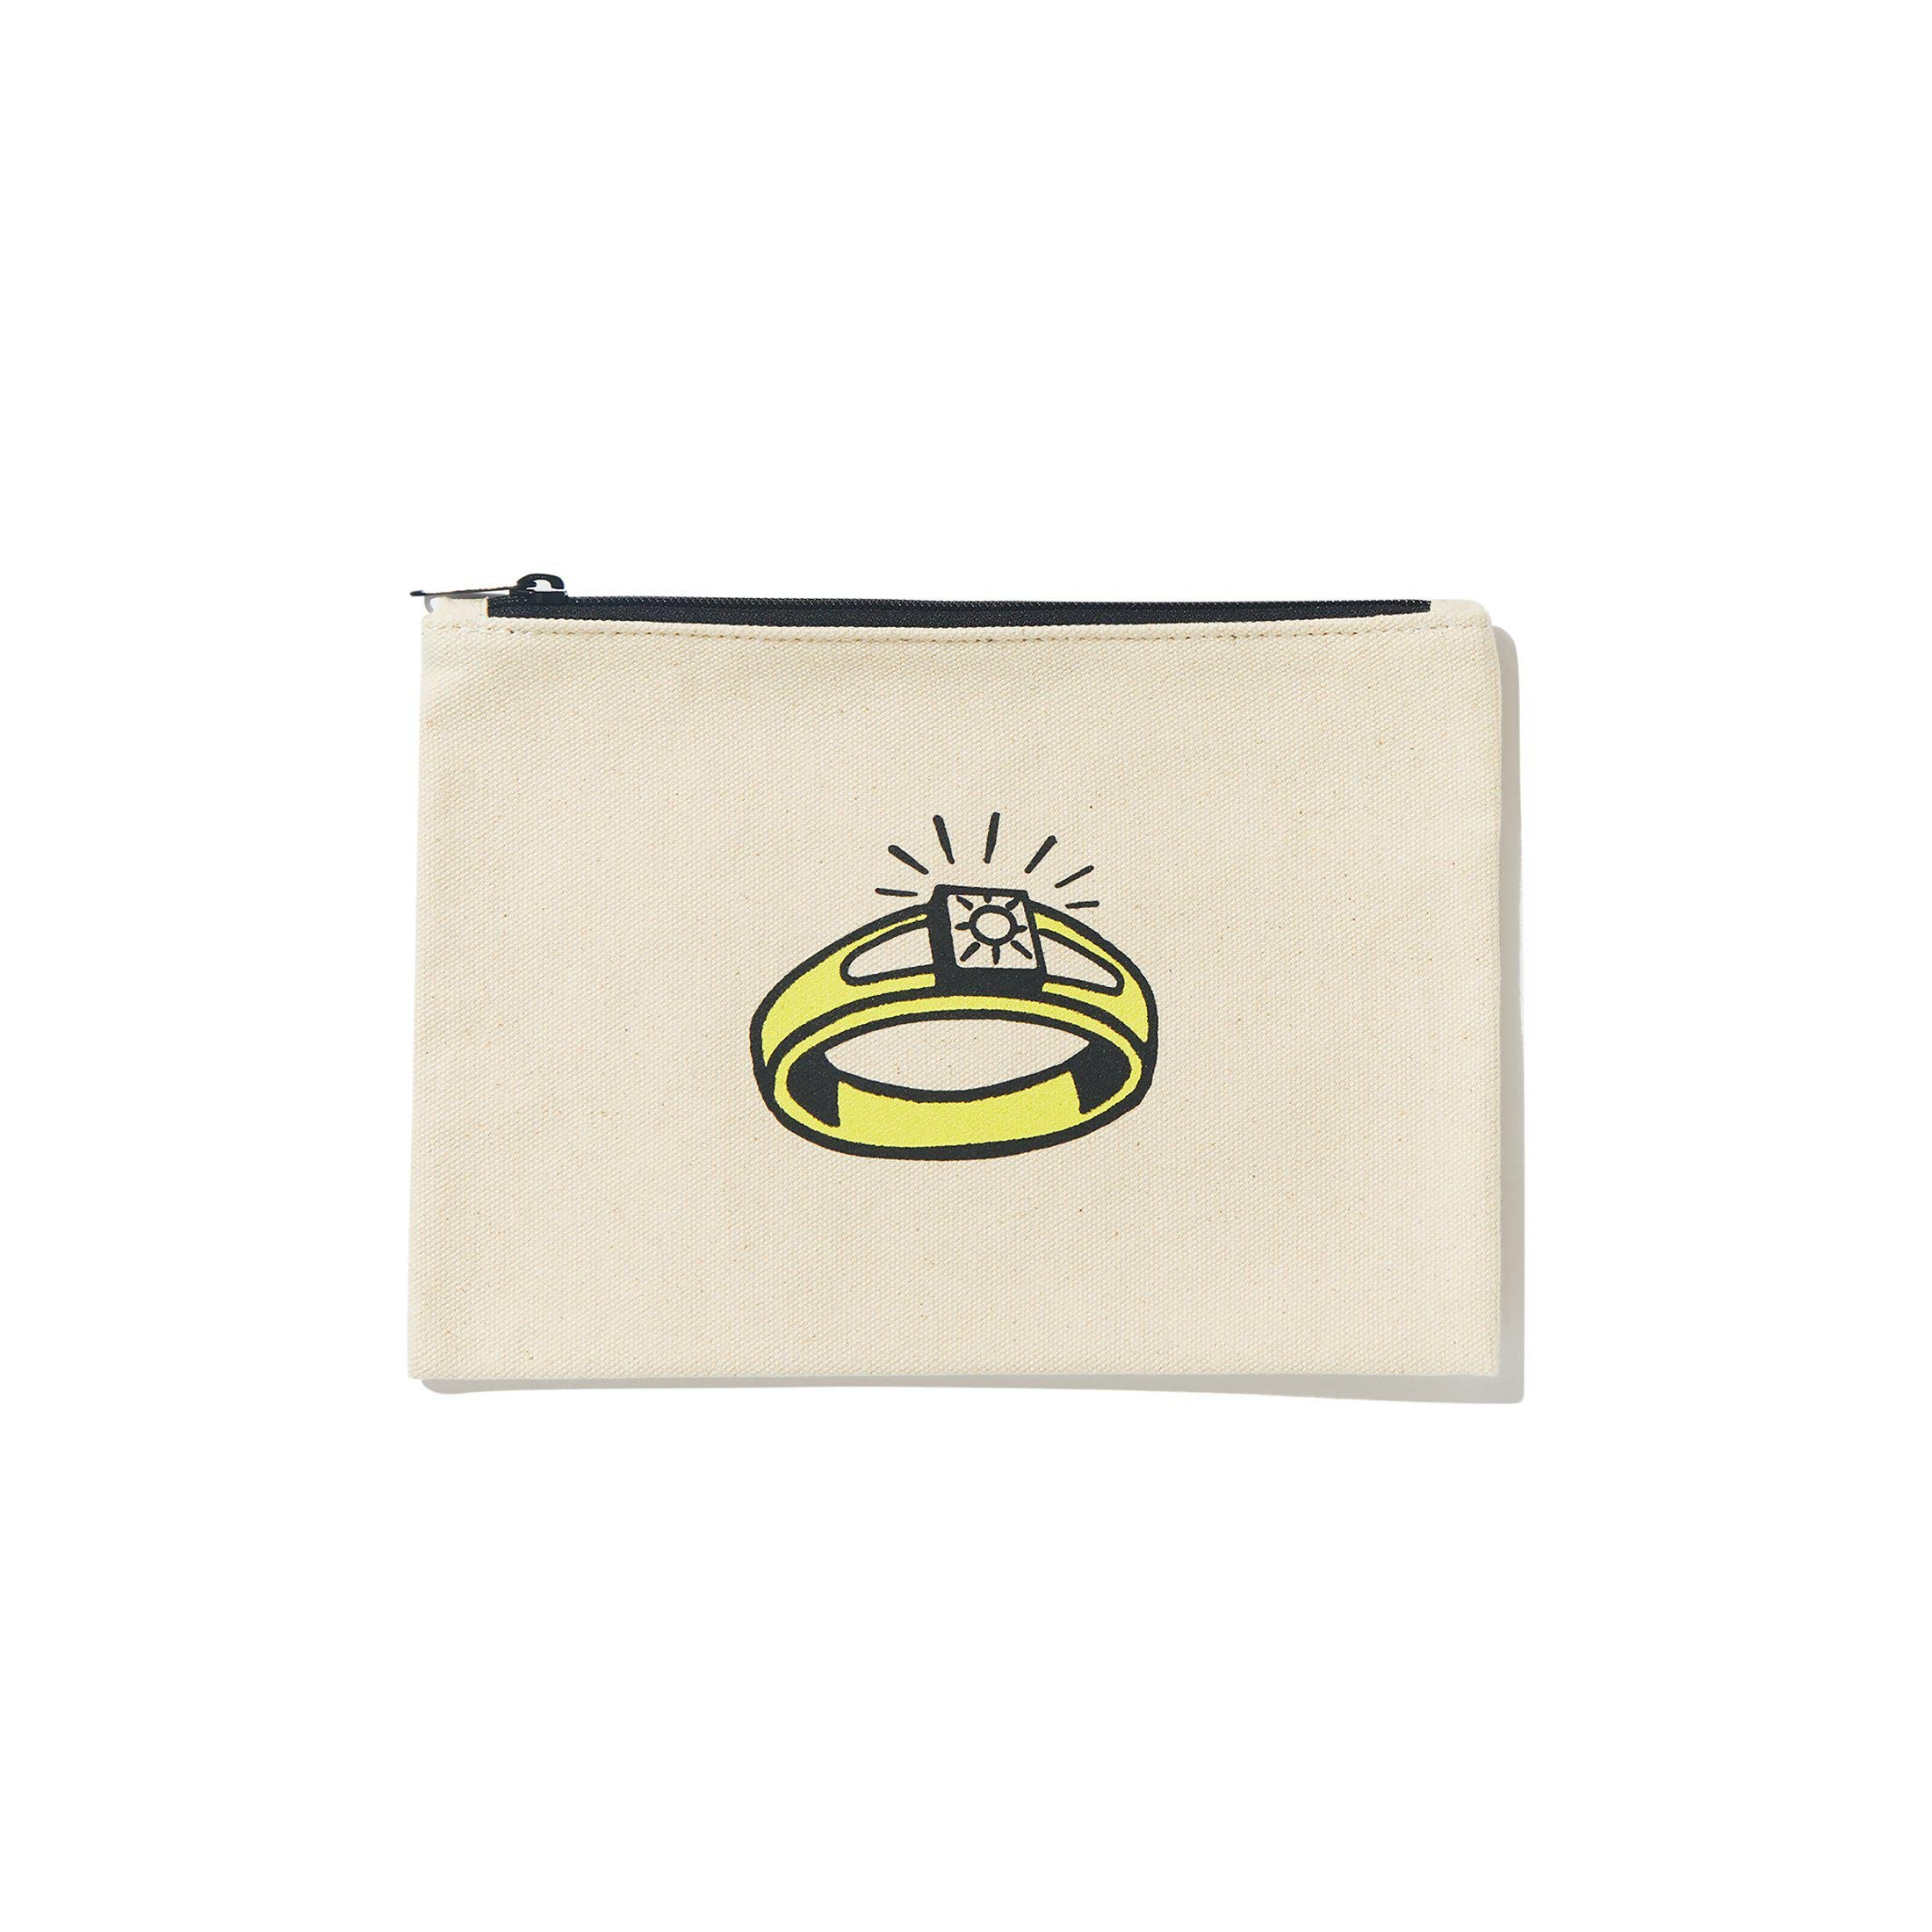 The Luxury Pouch - Canvas